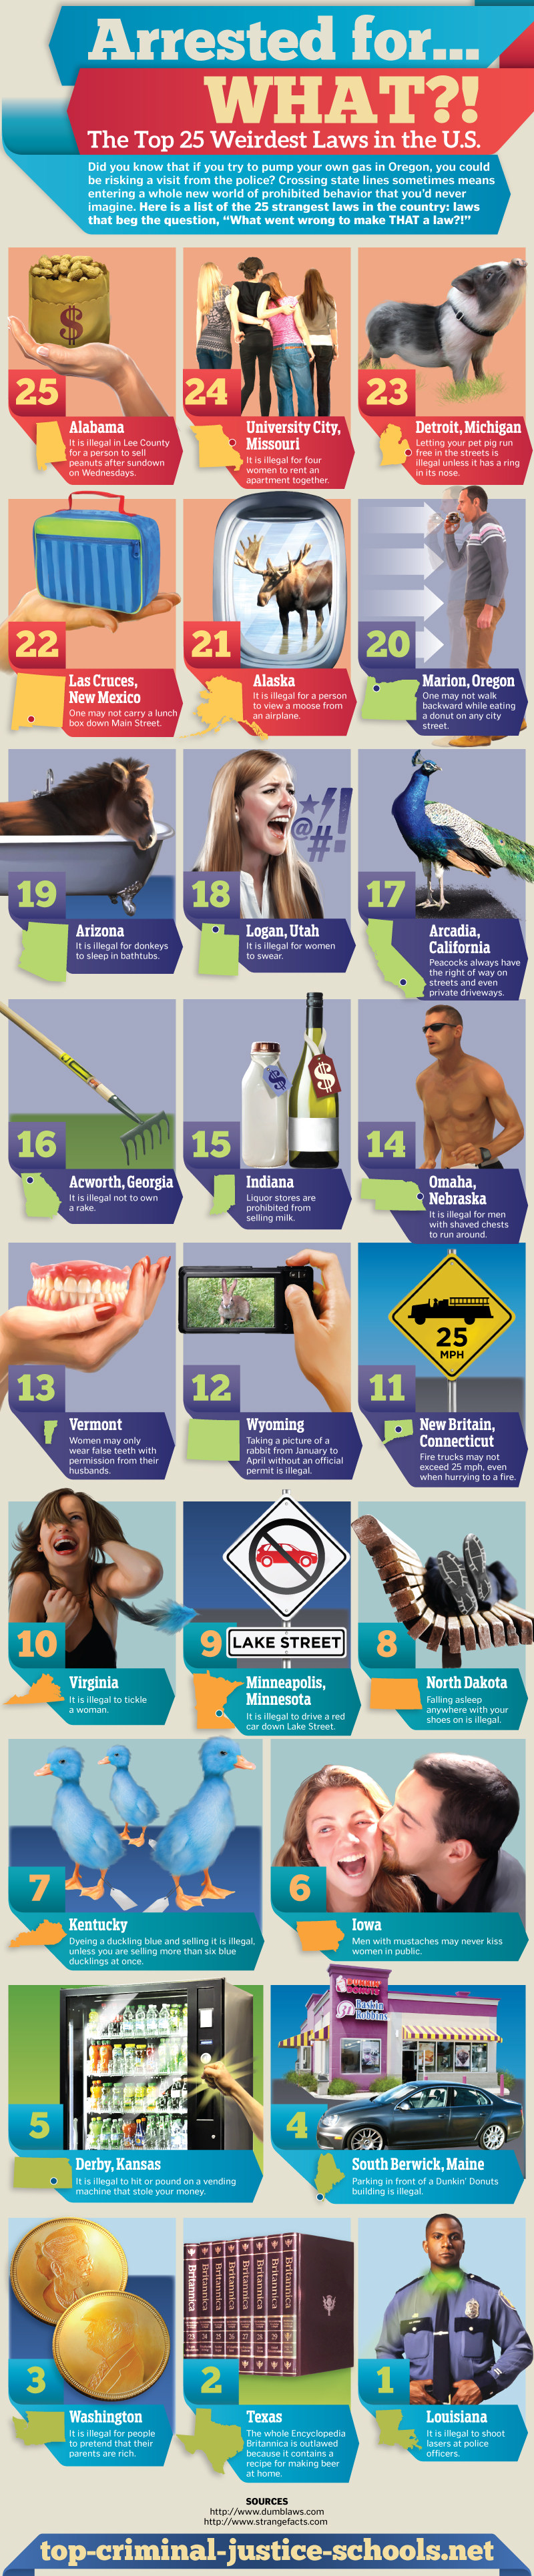 The-Top-25-Weirdest-Laws-in-the-US-Infographic